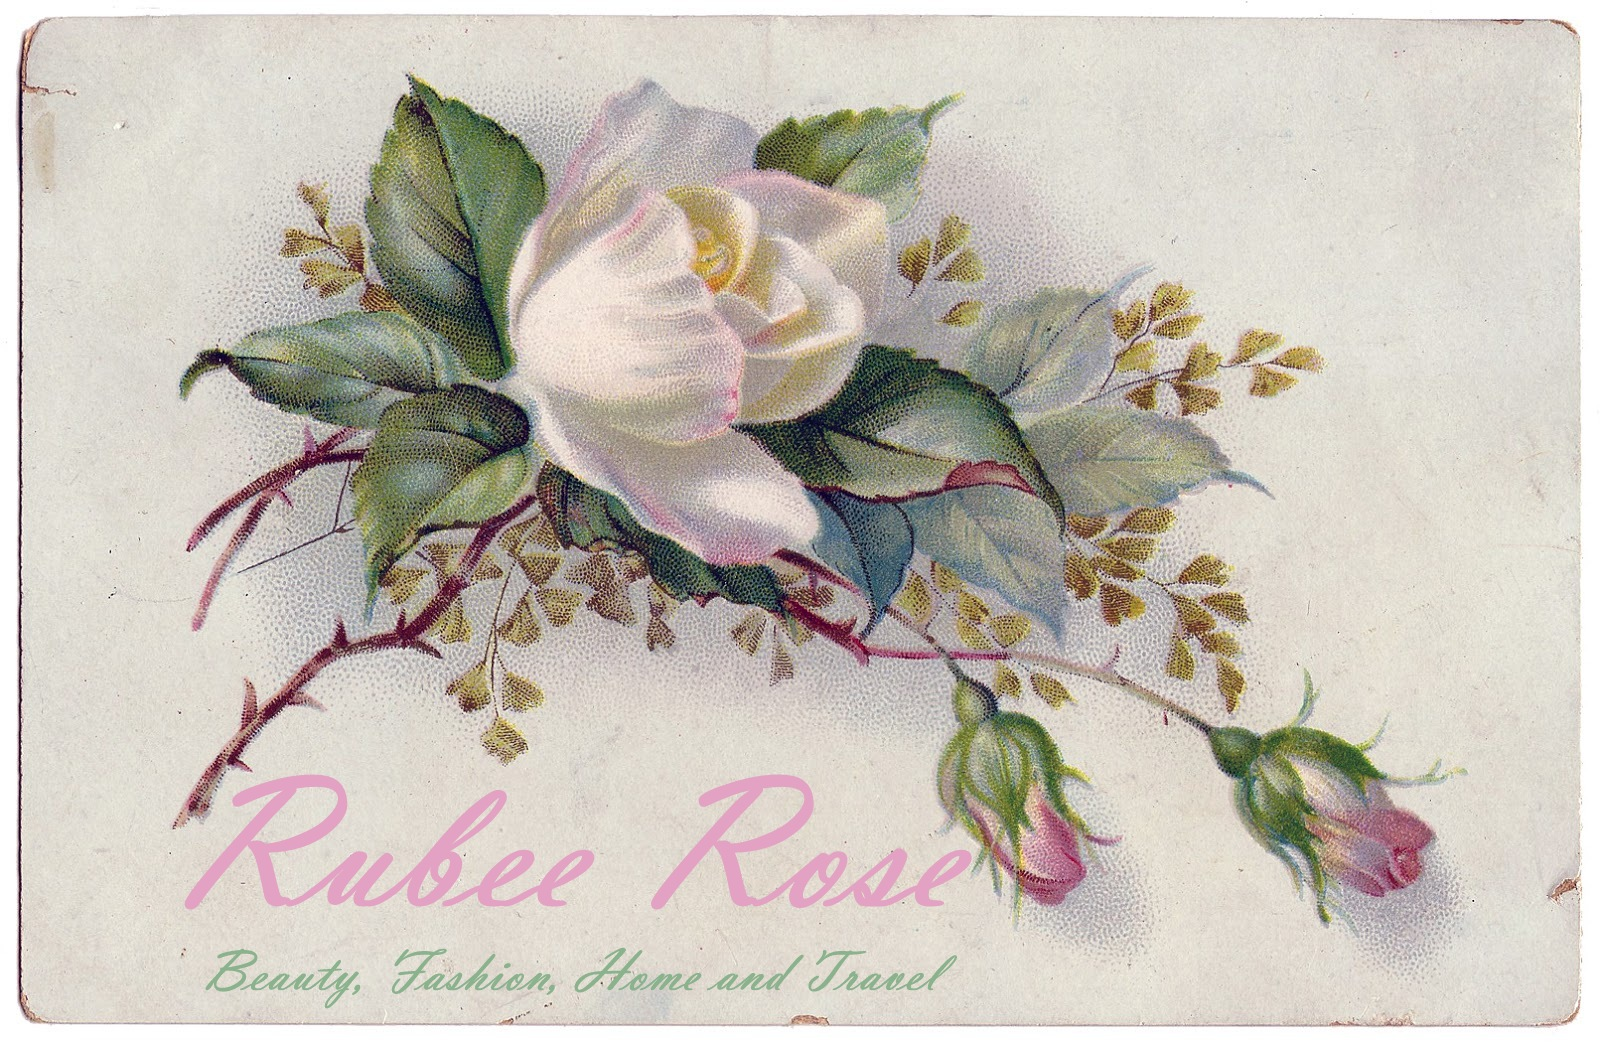 Rubee Rose